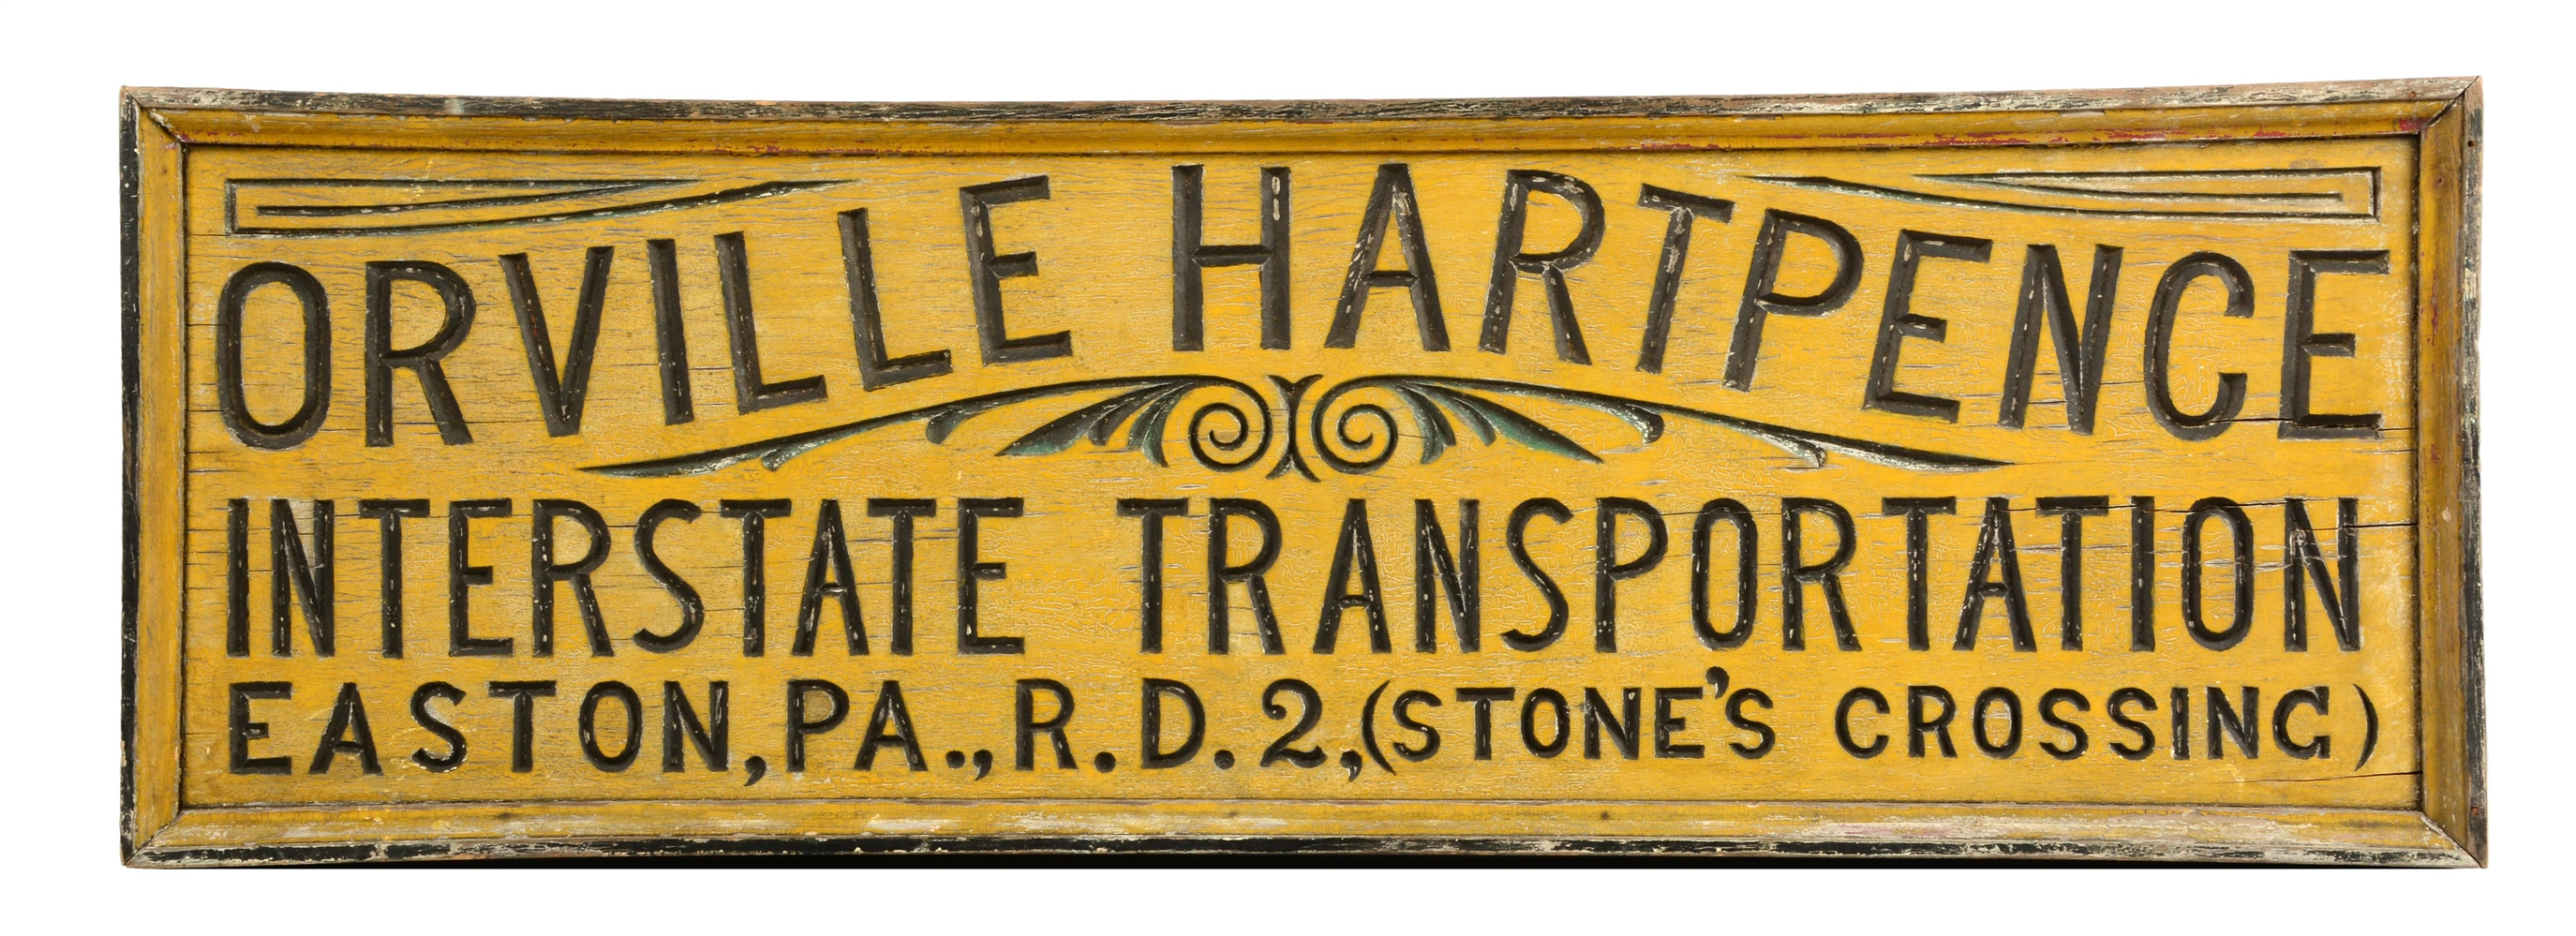 Orville Hartpence Interstate Transportation Wooden Advertising Sign.